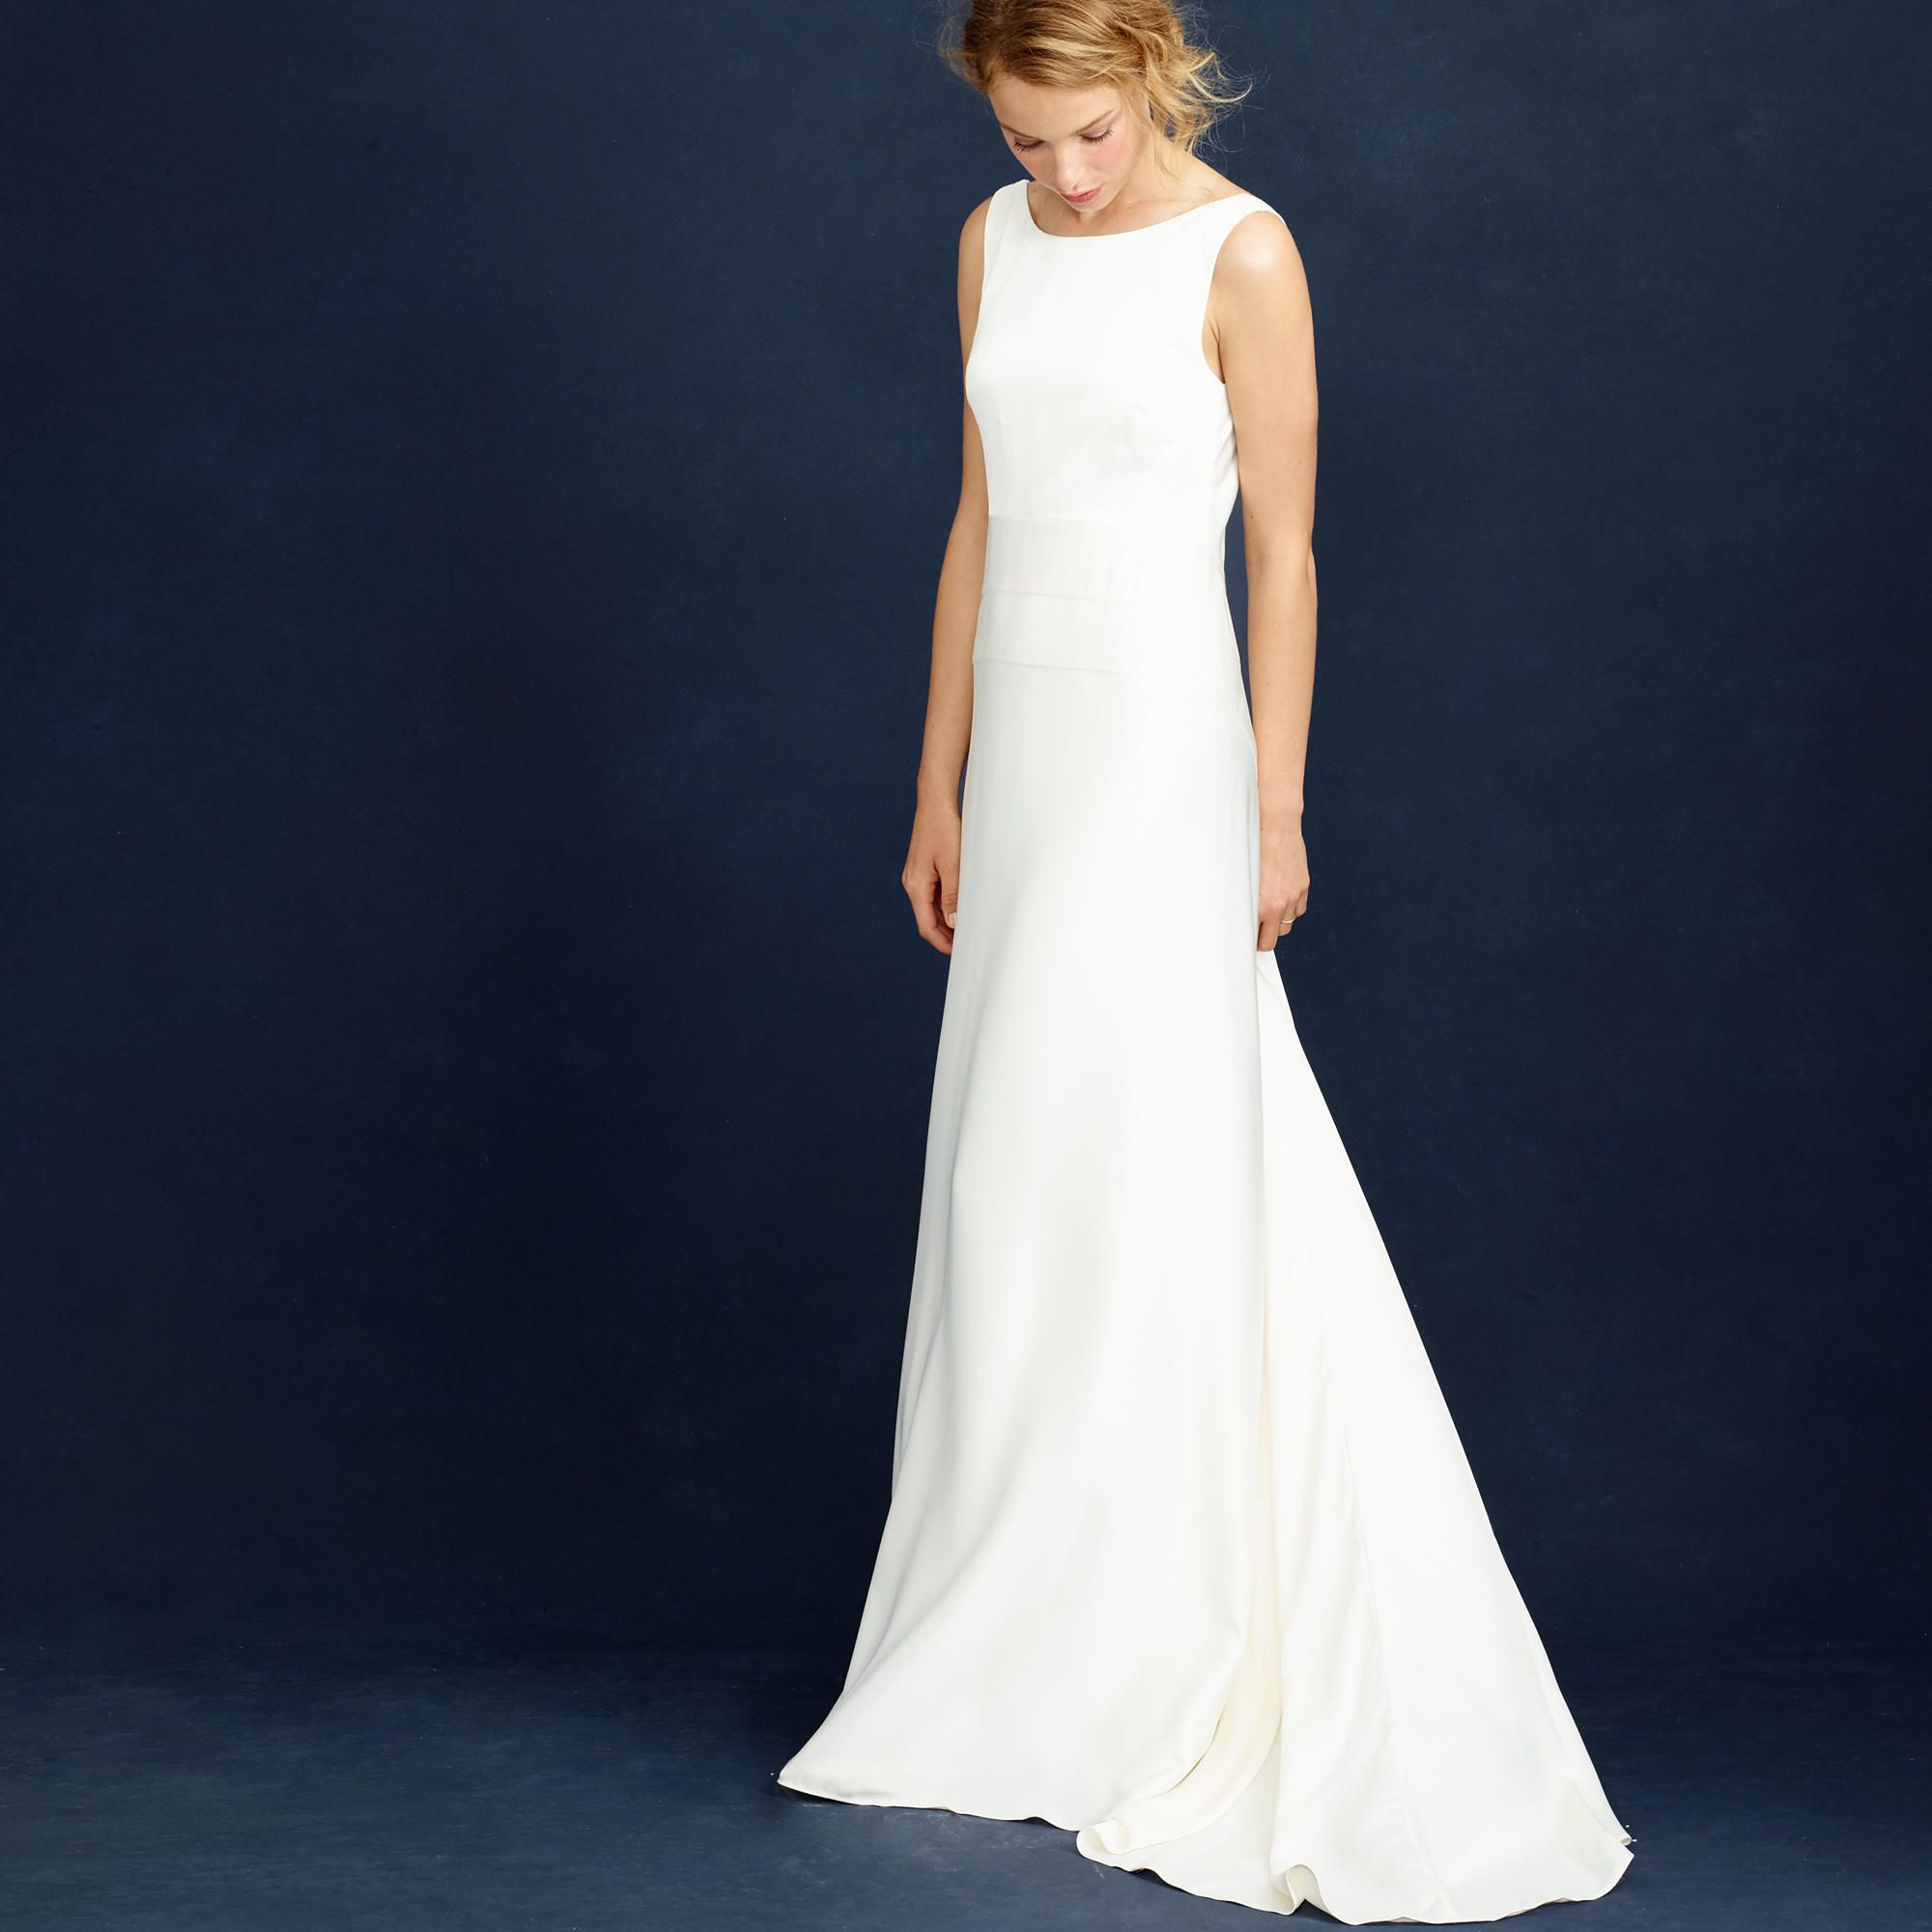 Wedding dresses for the bride over gowns ballrooms and claire